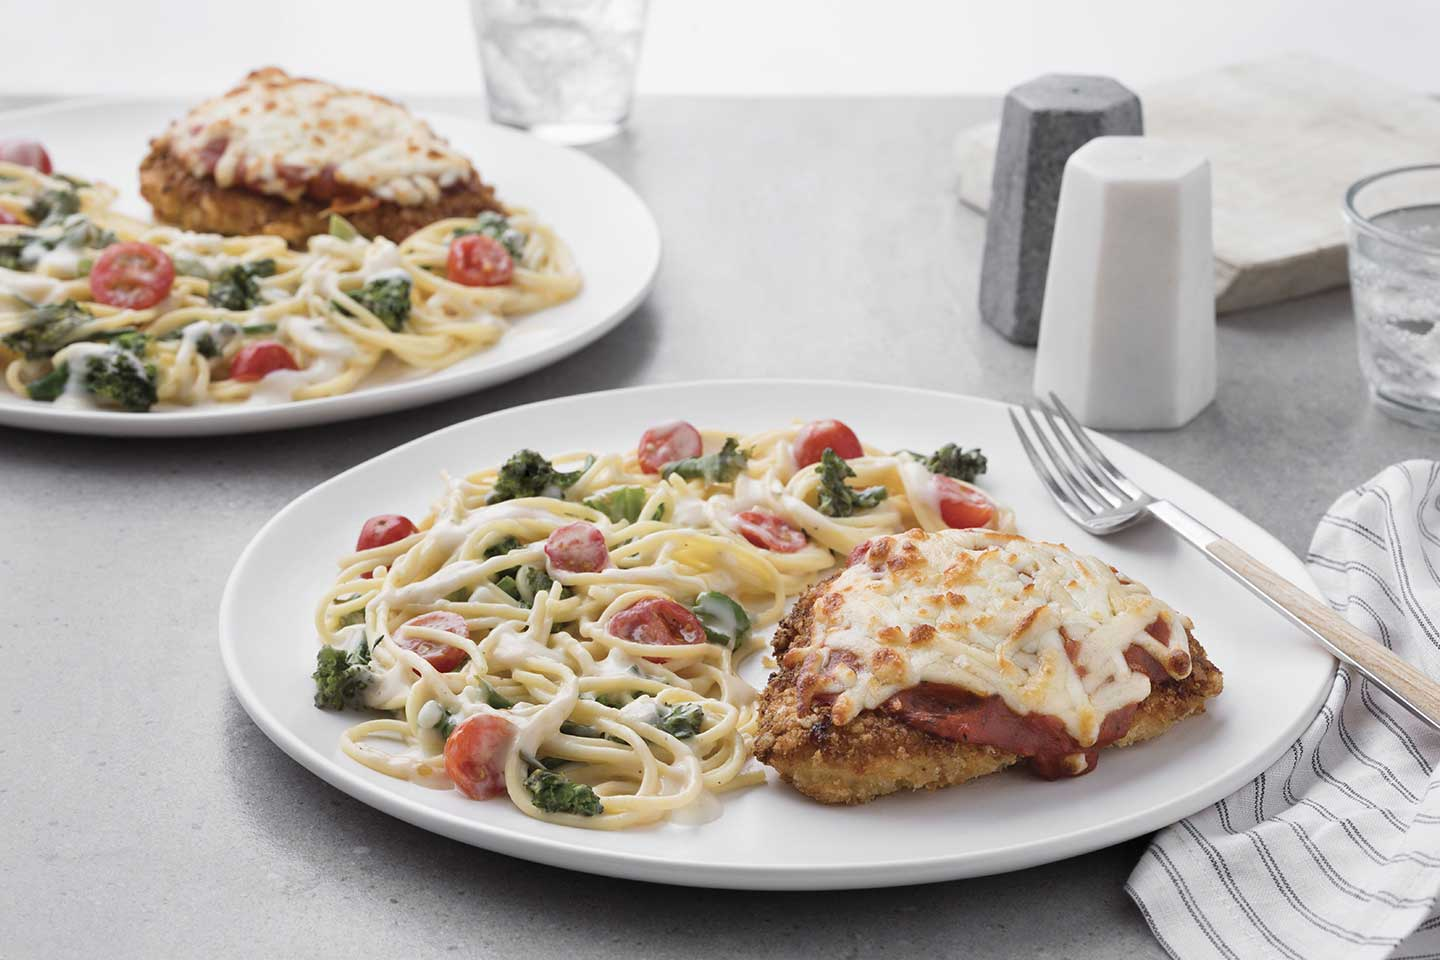 Chick-fil-A Chicken Parmesan Meal Kit